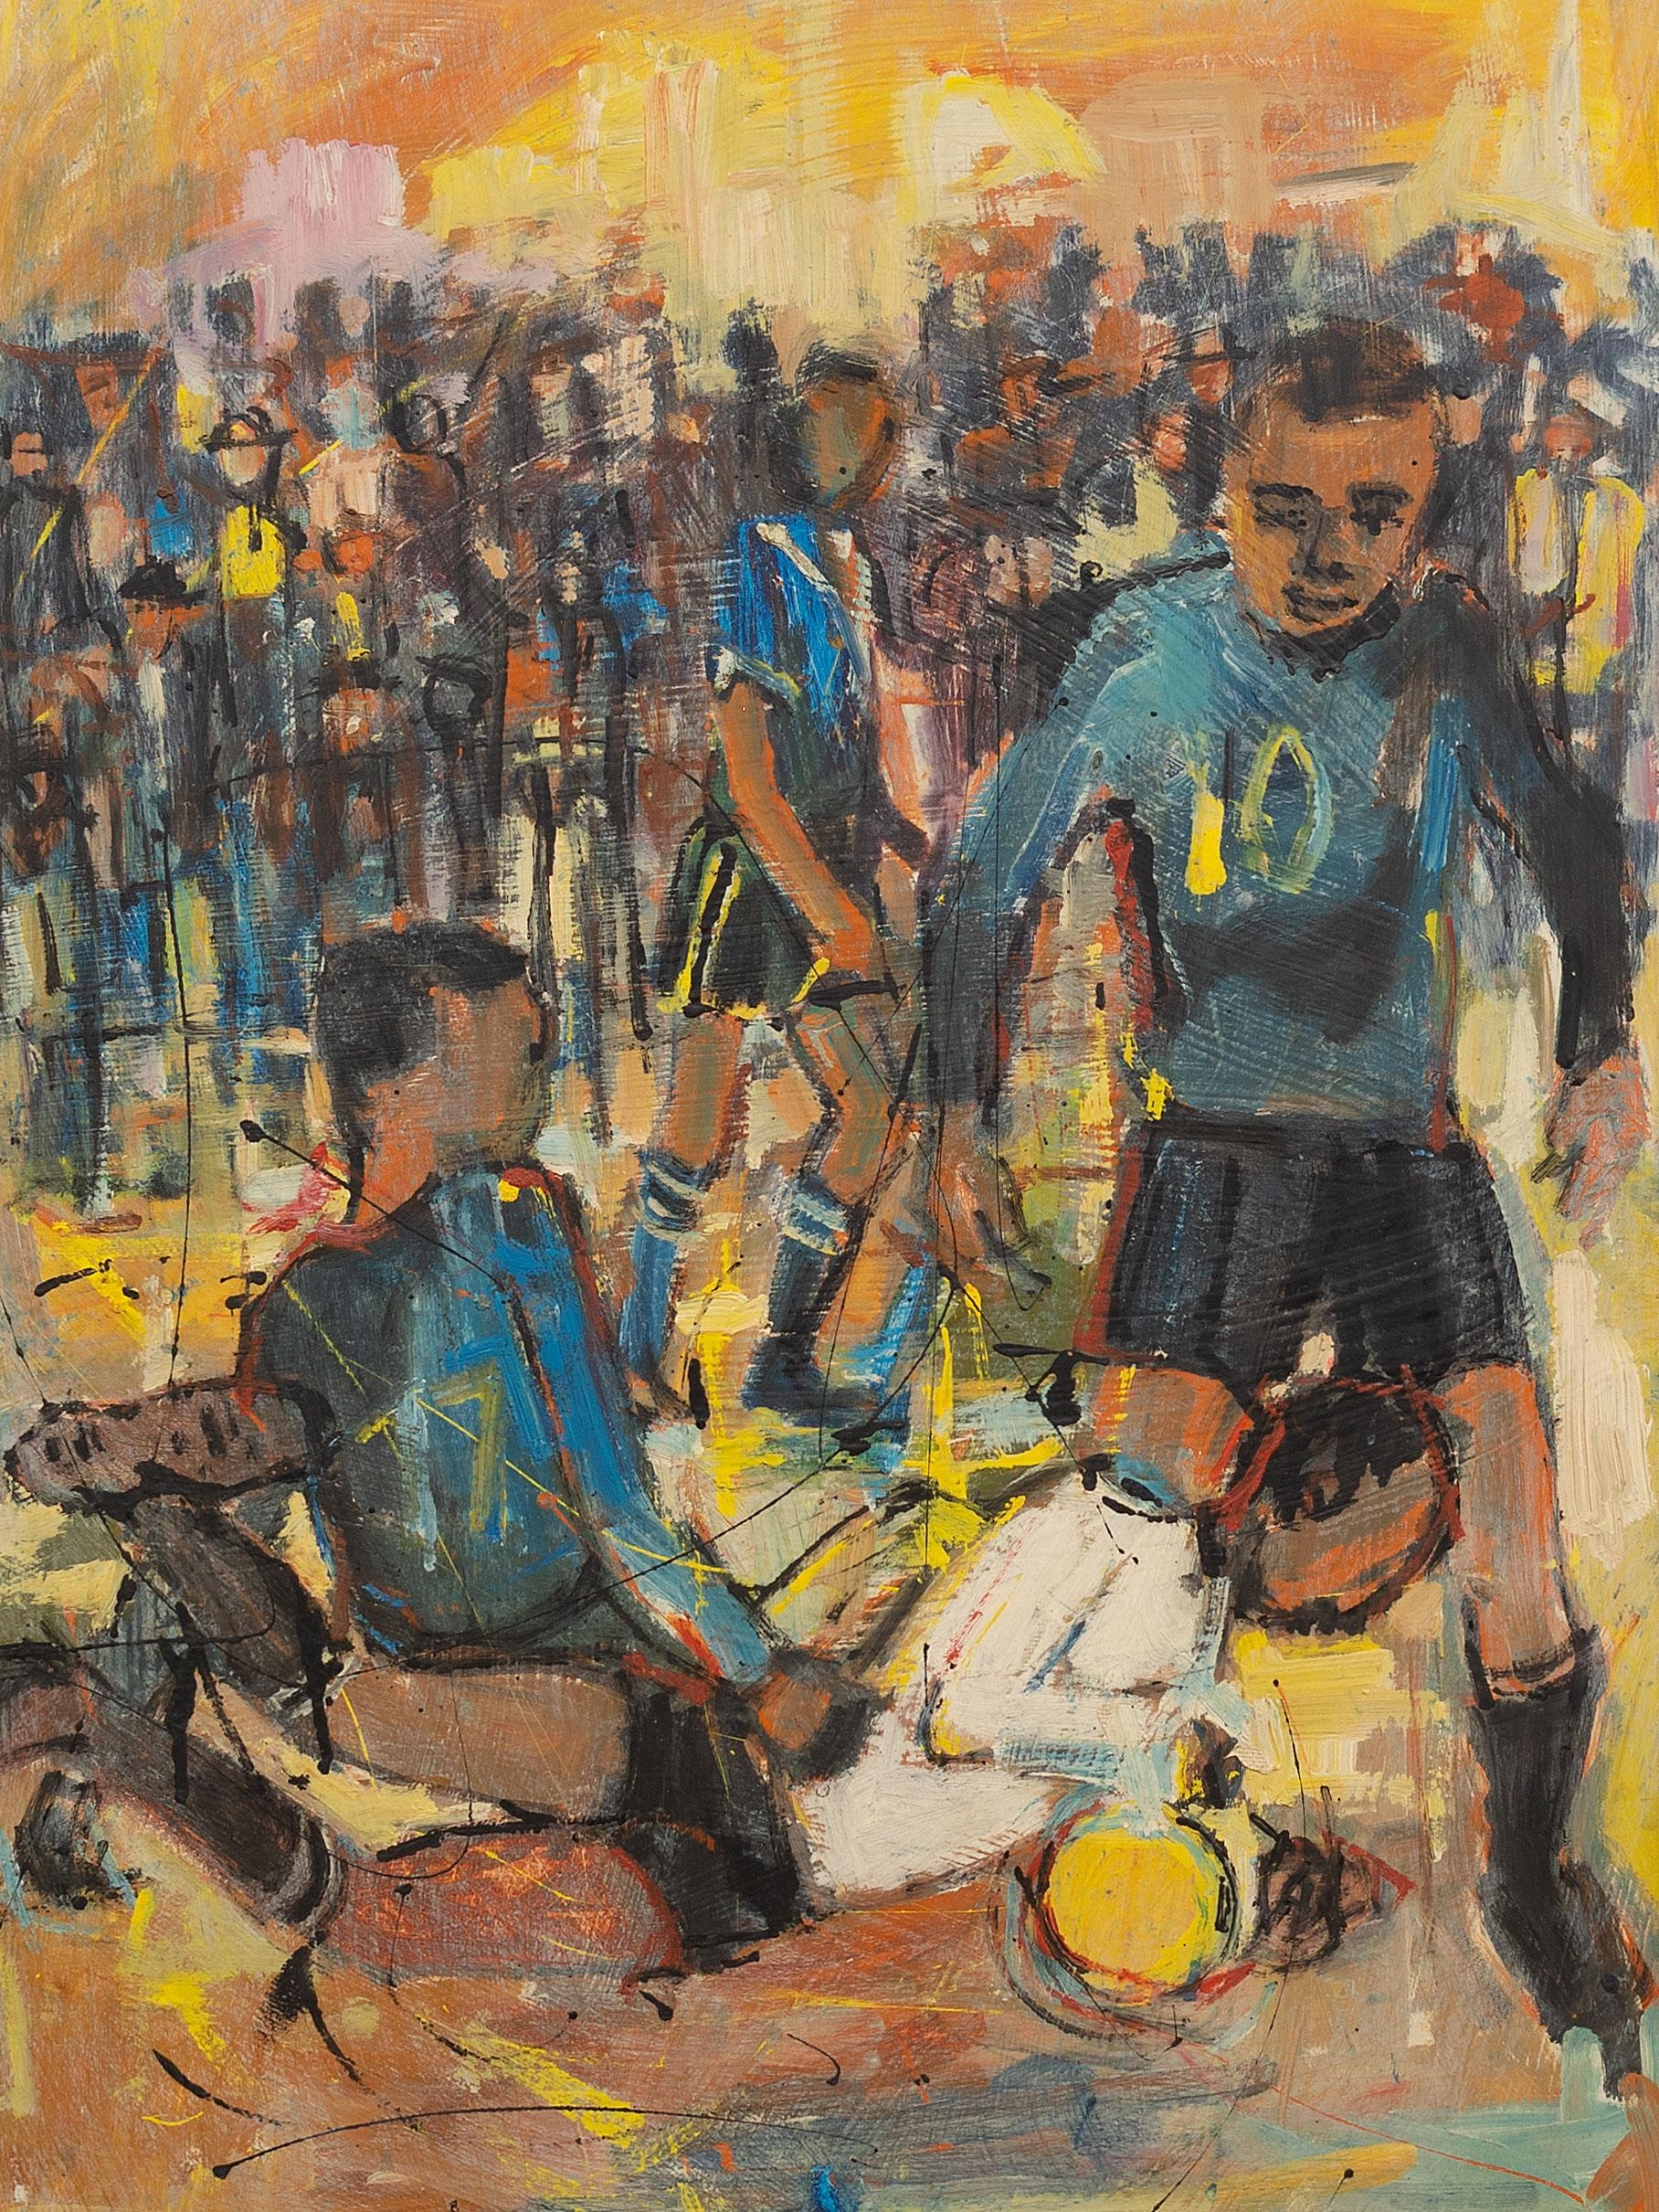 "Ephraim Ngatane (SA 1938 - 1971) Oil, Soccer Players, Signed & Dated '68 Illustrated on Page 72 of ""Ephraim Ngatane - A Setting Apart"" by Natalie Knight, Rory Bester & David Koloane, 90 x 58"